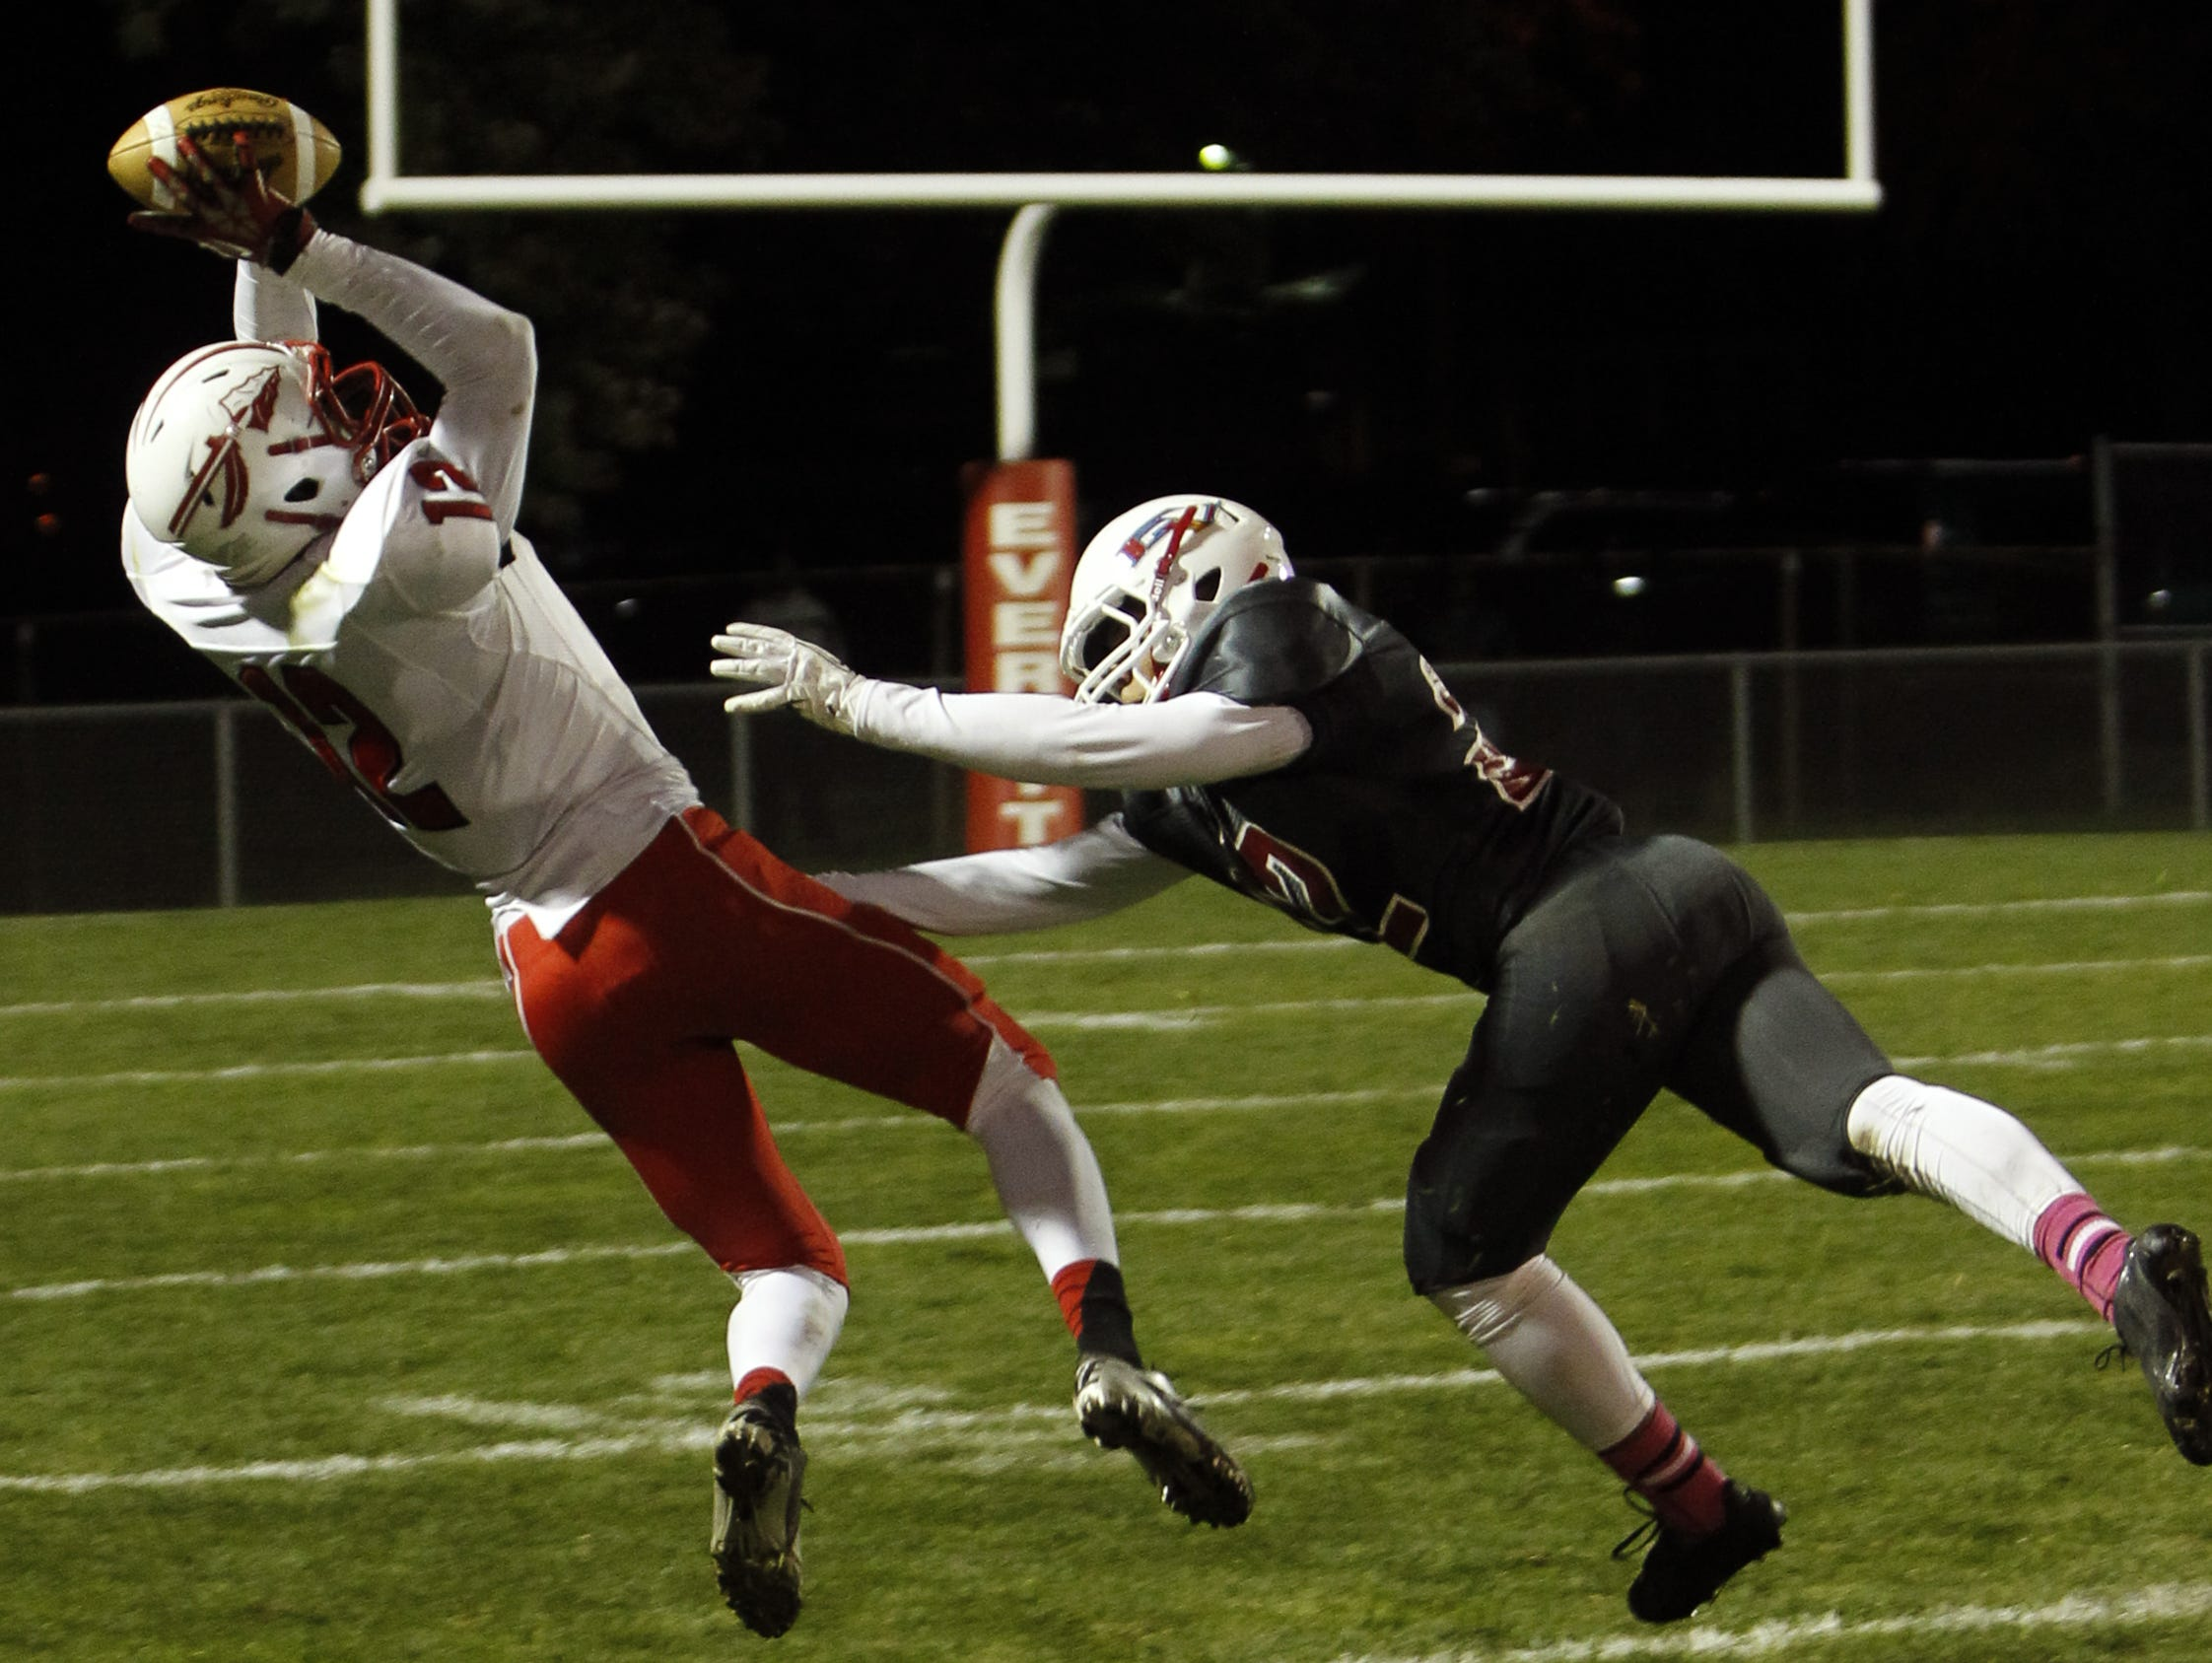 Rayshawn Wilborn (12) snags a pass during Sexton?s 34-20 win over Everett last October